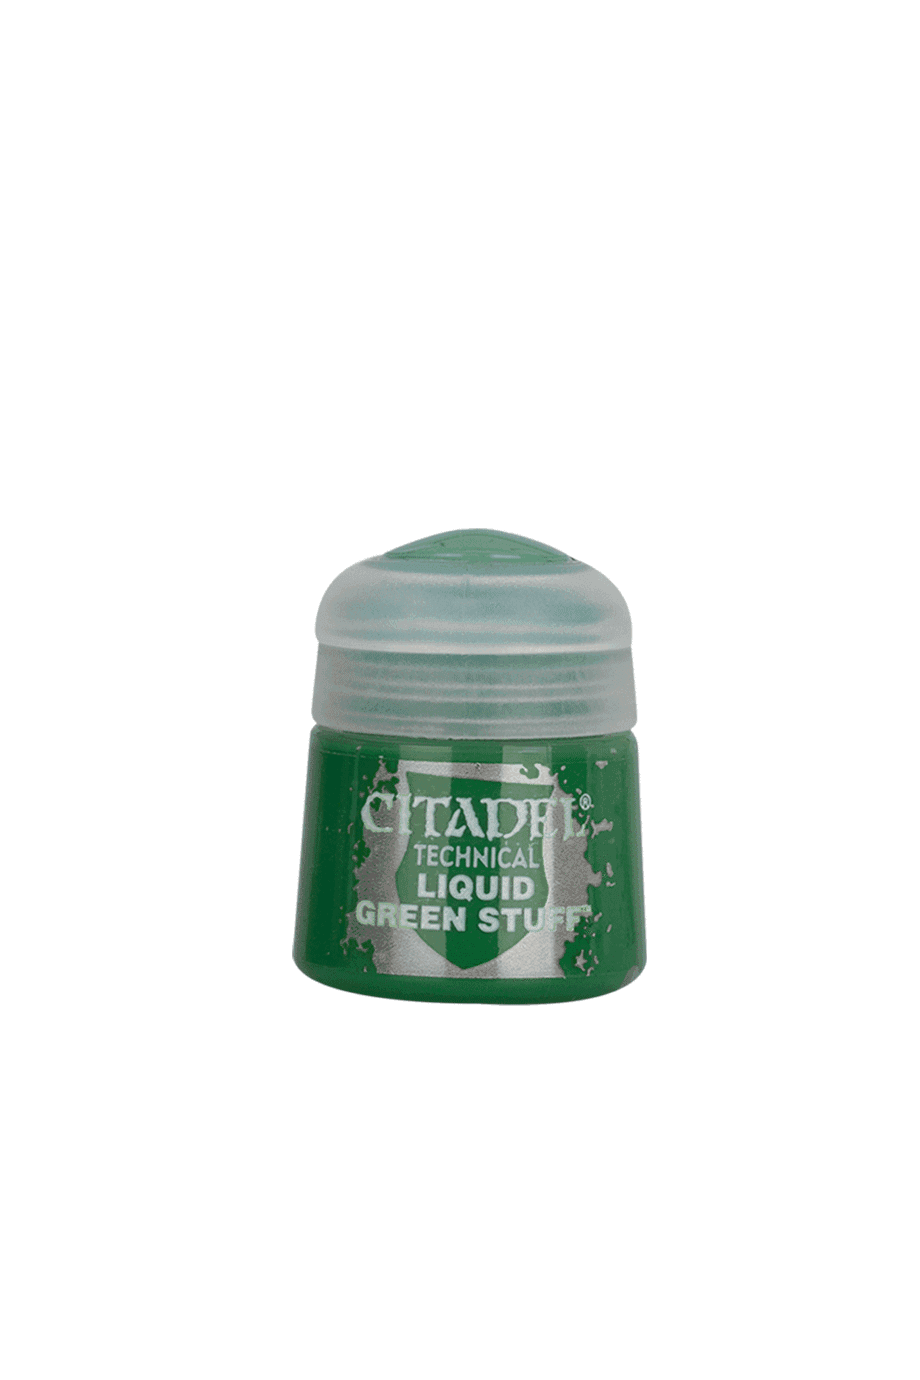 citadel-liquid-green-stuff-games-workshop-5011921069361-thegamersden.com